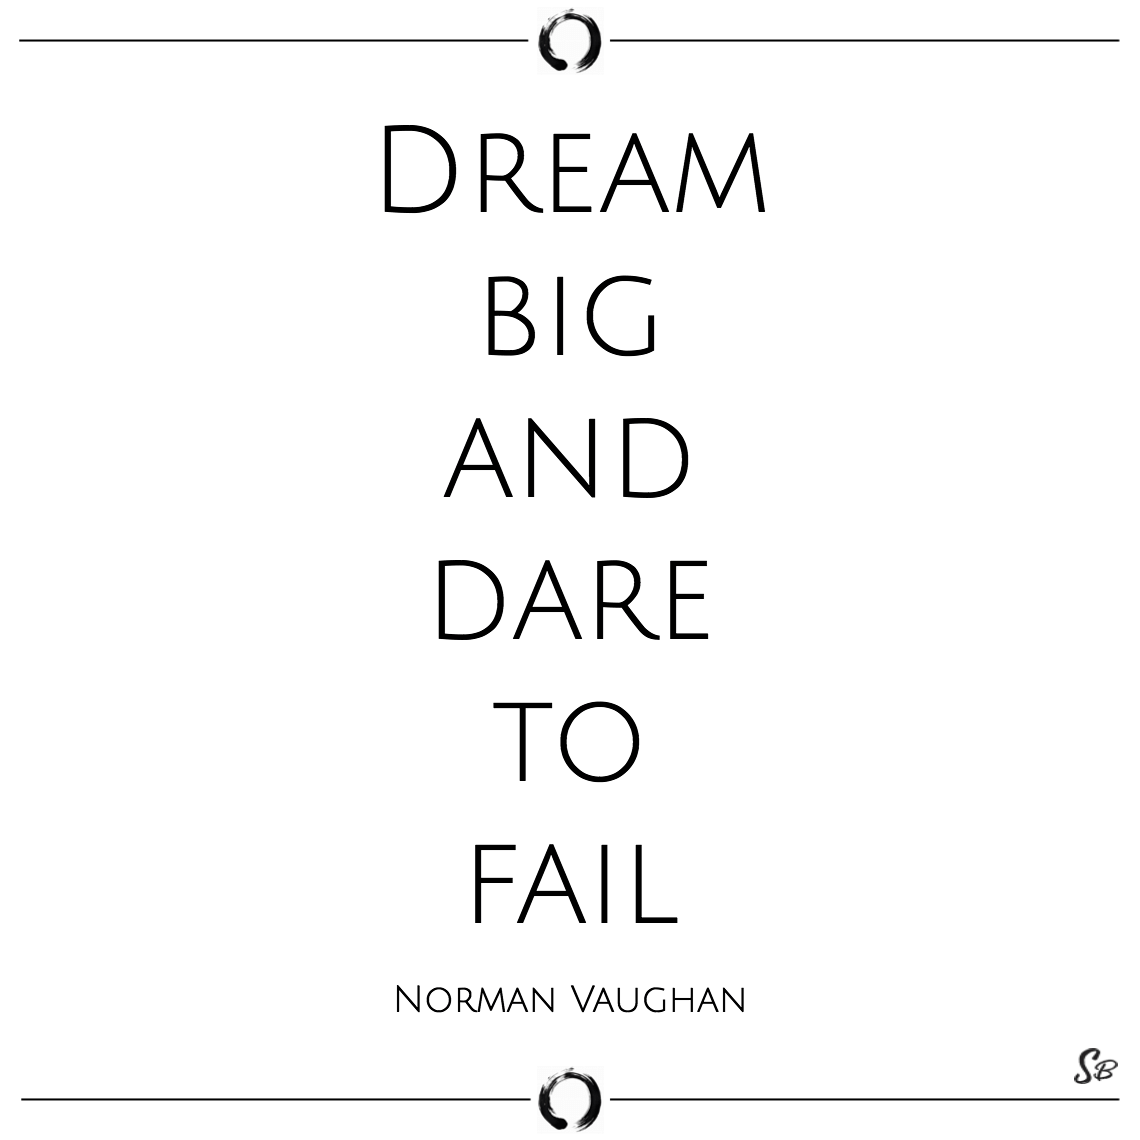 Dream big and dare to fail norman vaughan